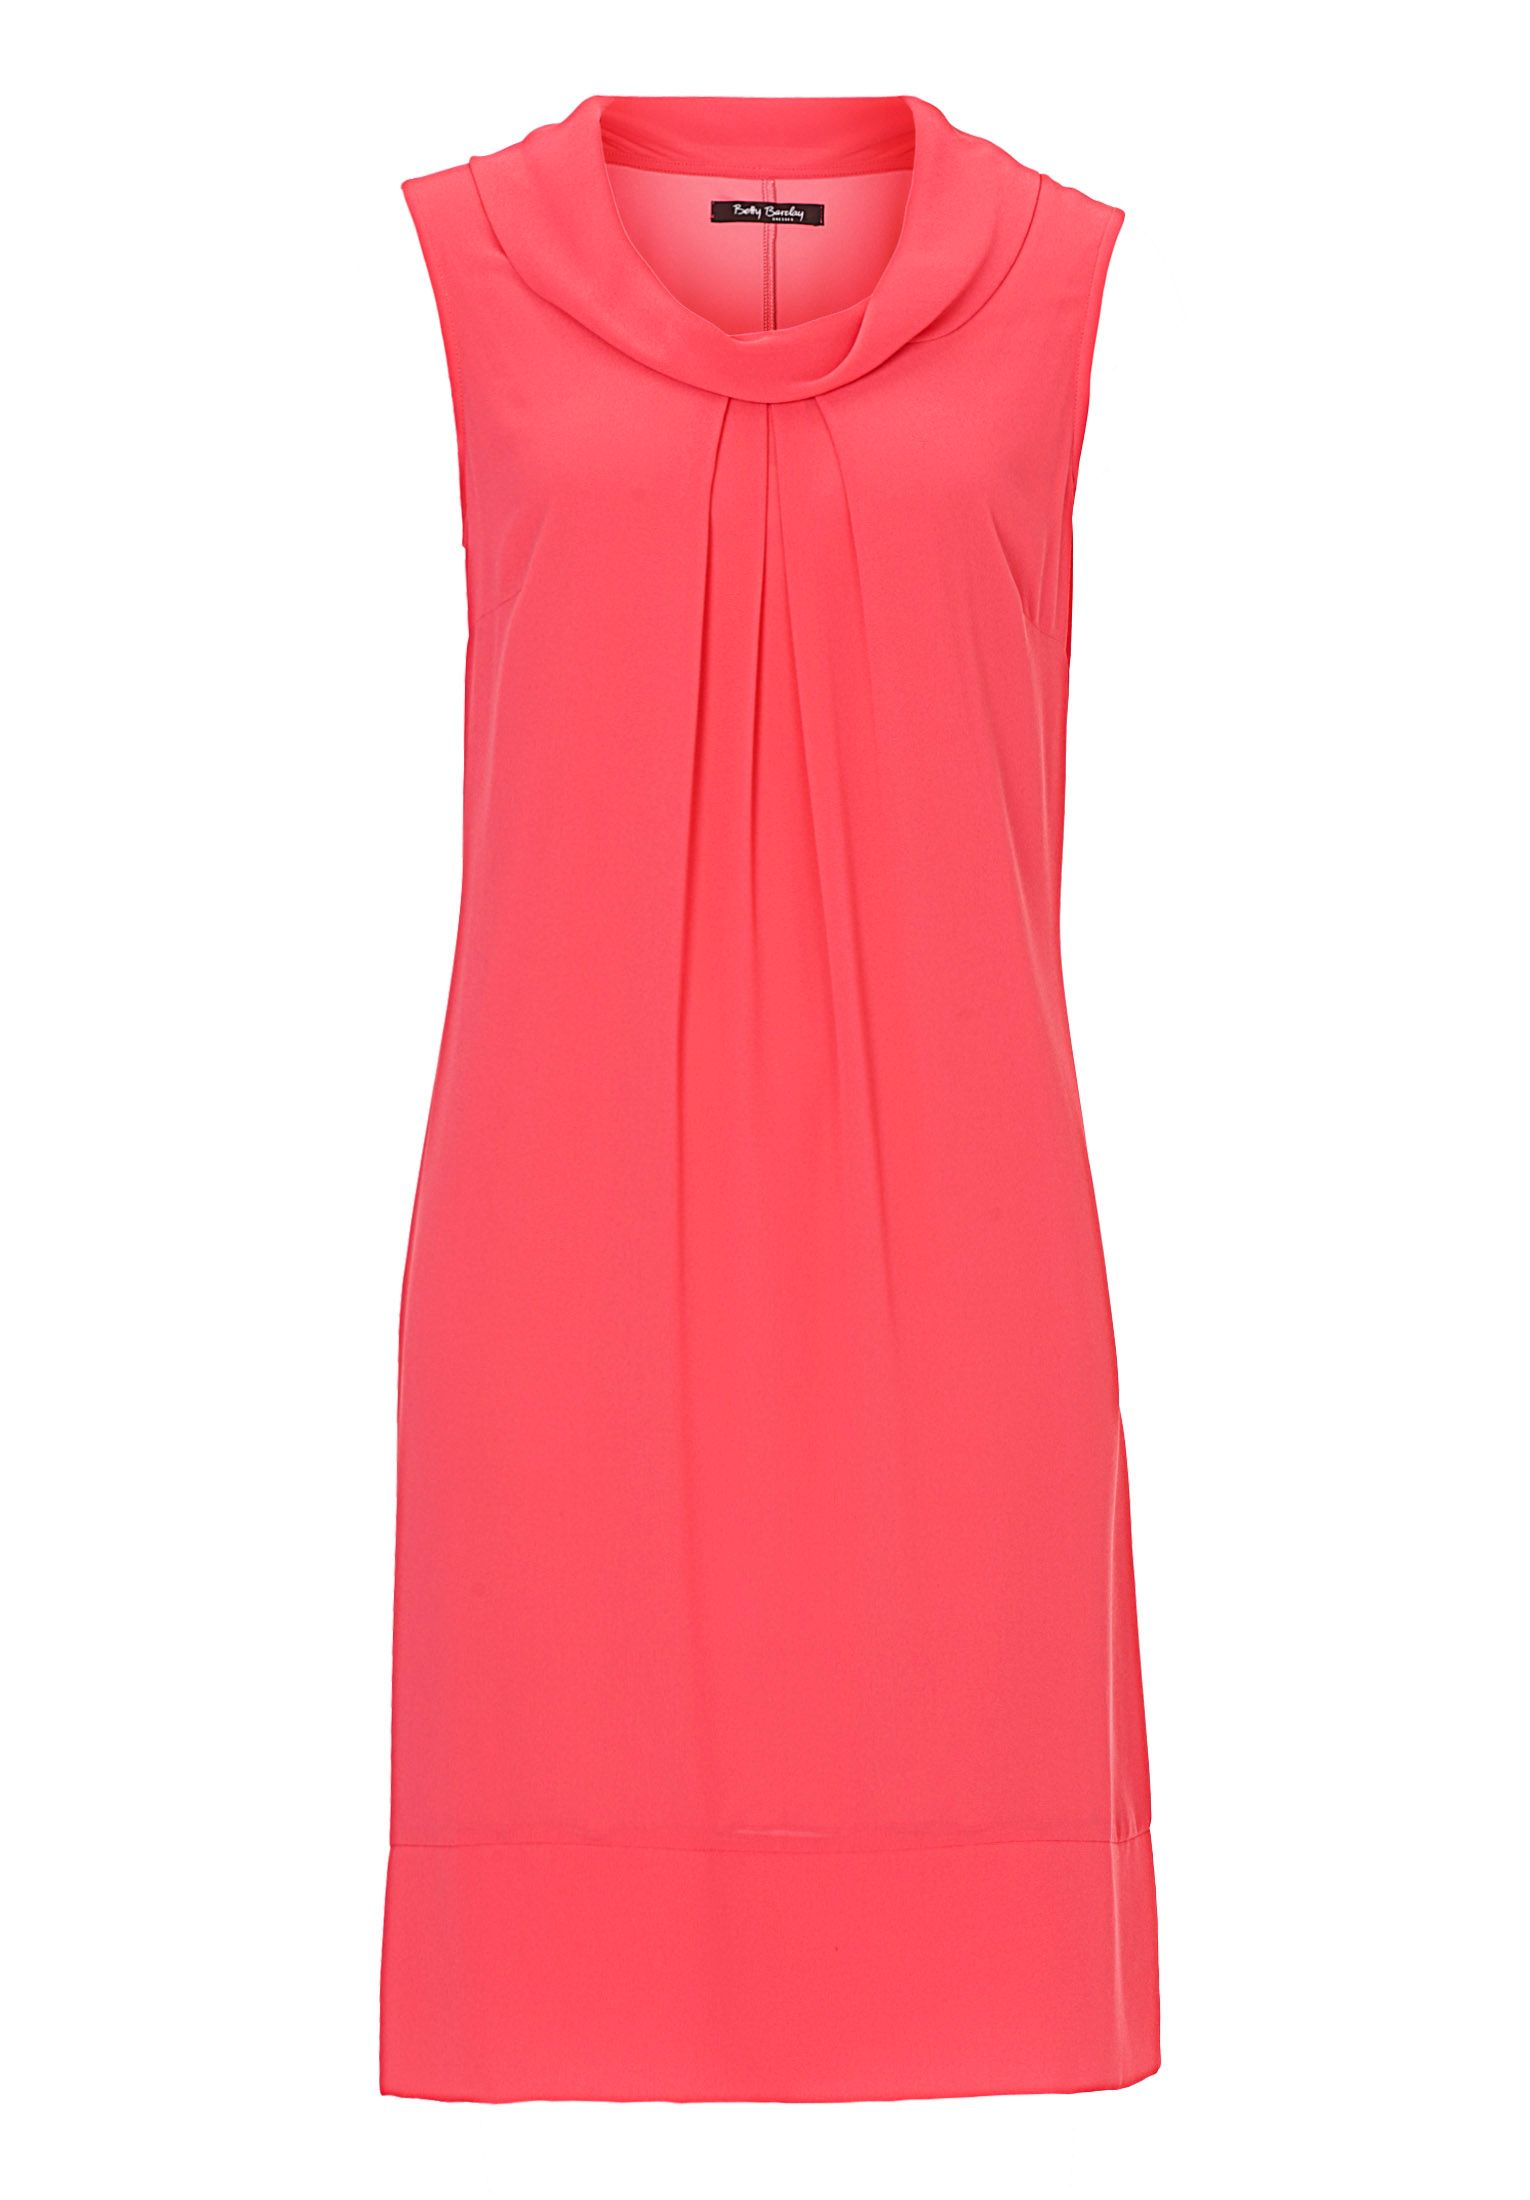 Betty Barclay Cowl neck chiffon dress, Pink